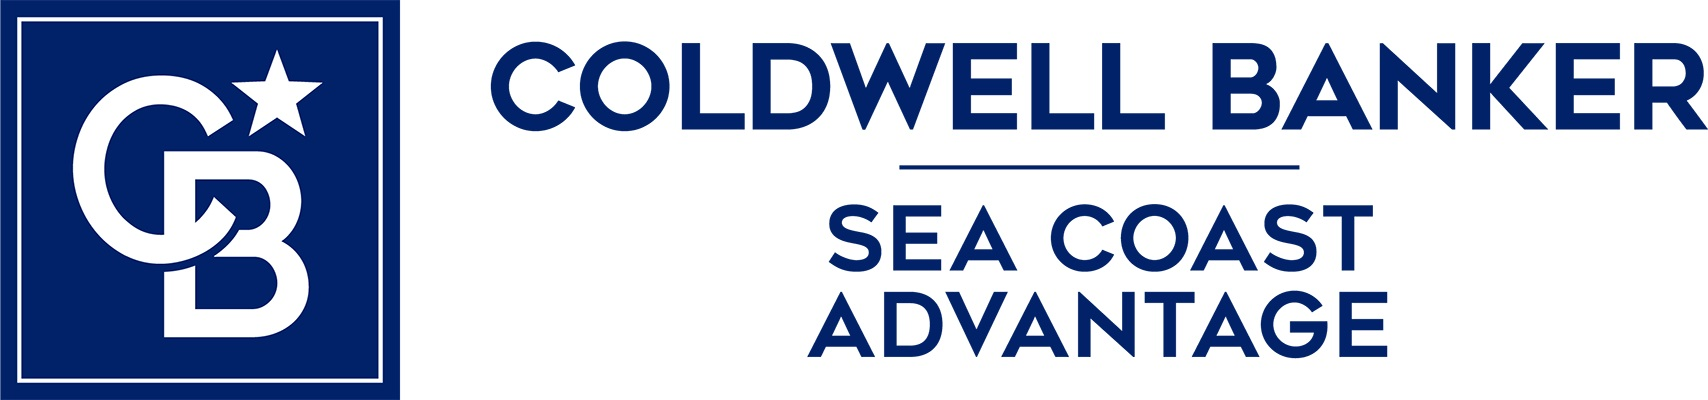 John Borklund - Coldwell Banker Sea Coast Advantage Realty Logo